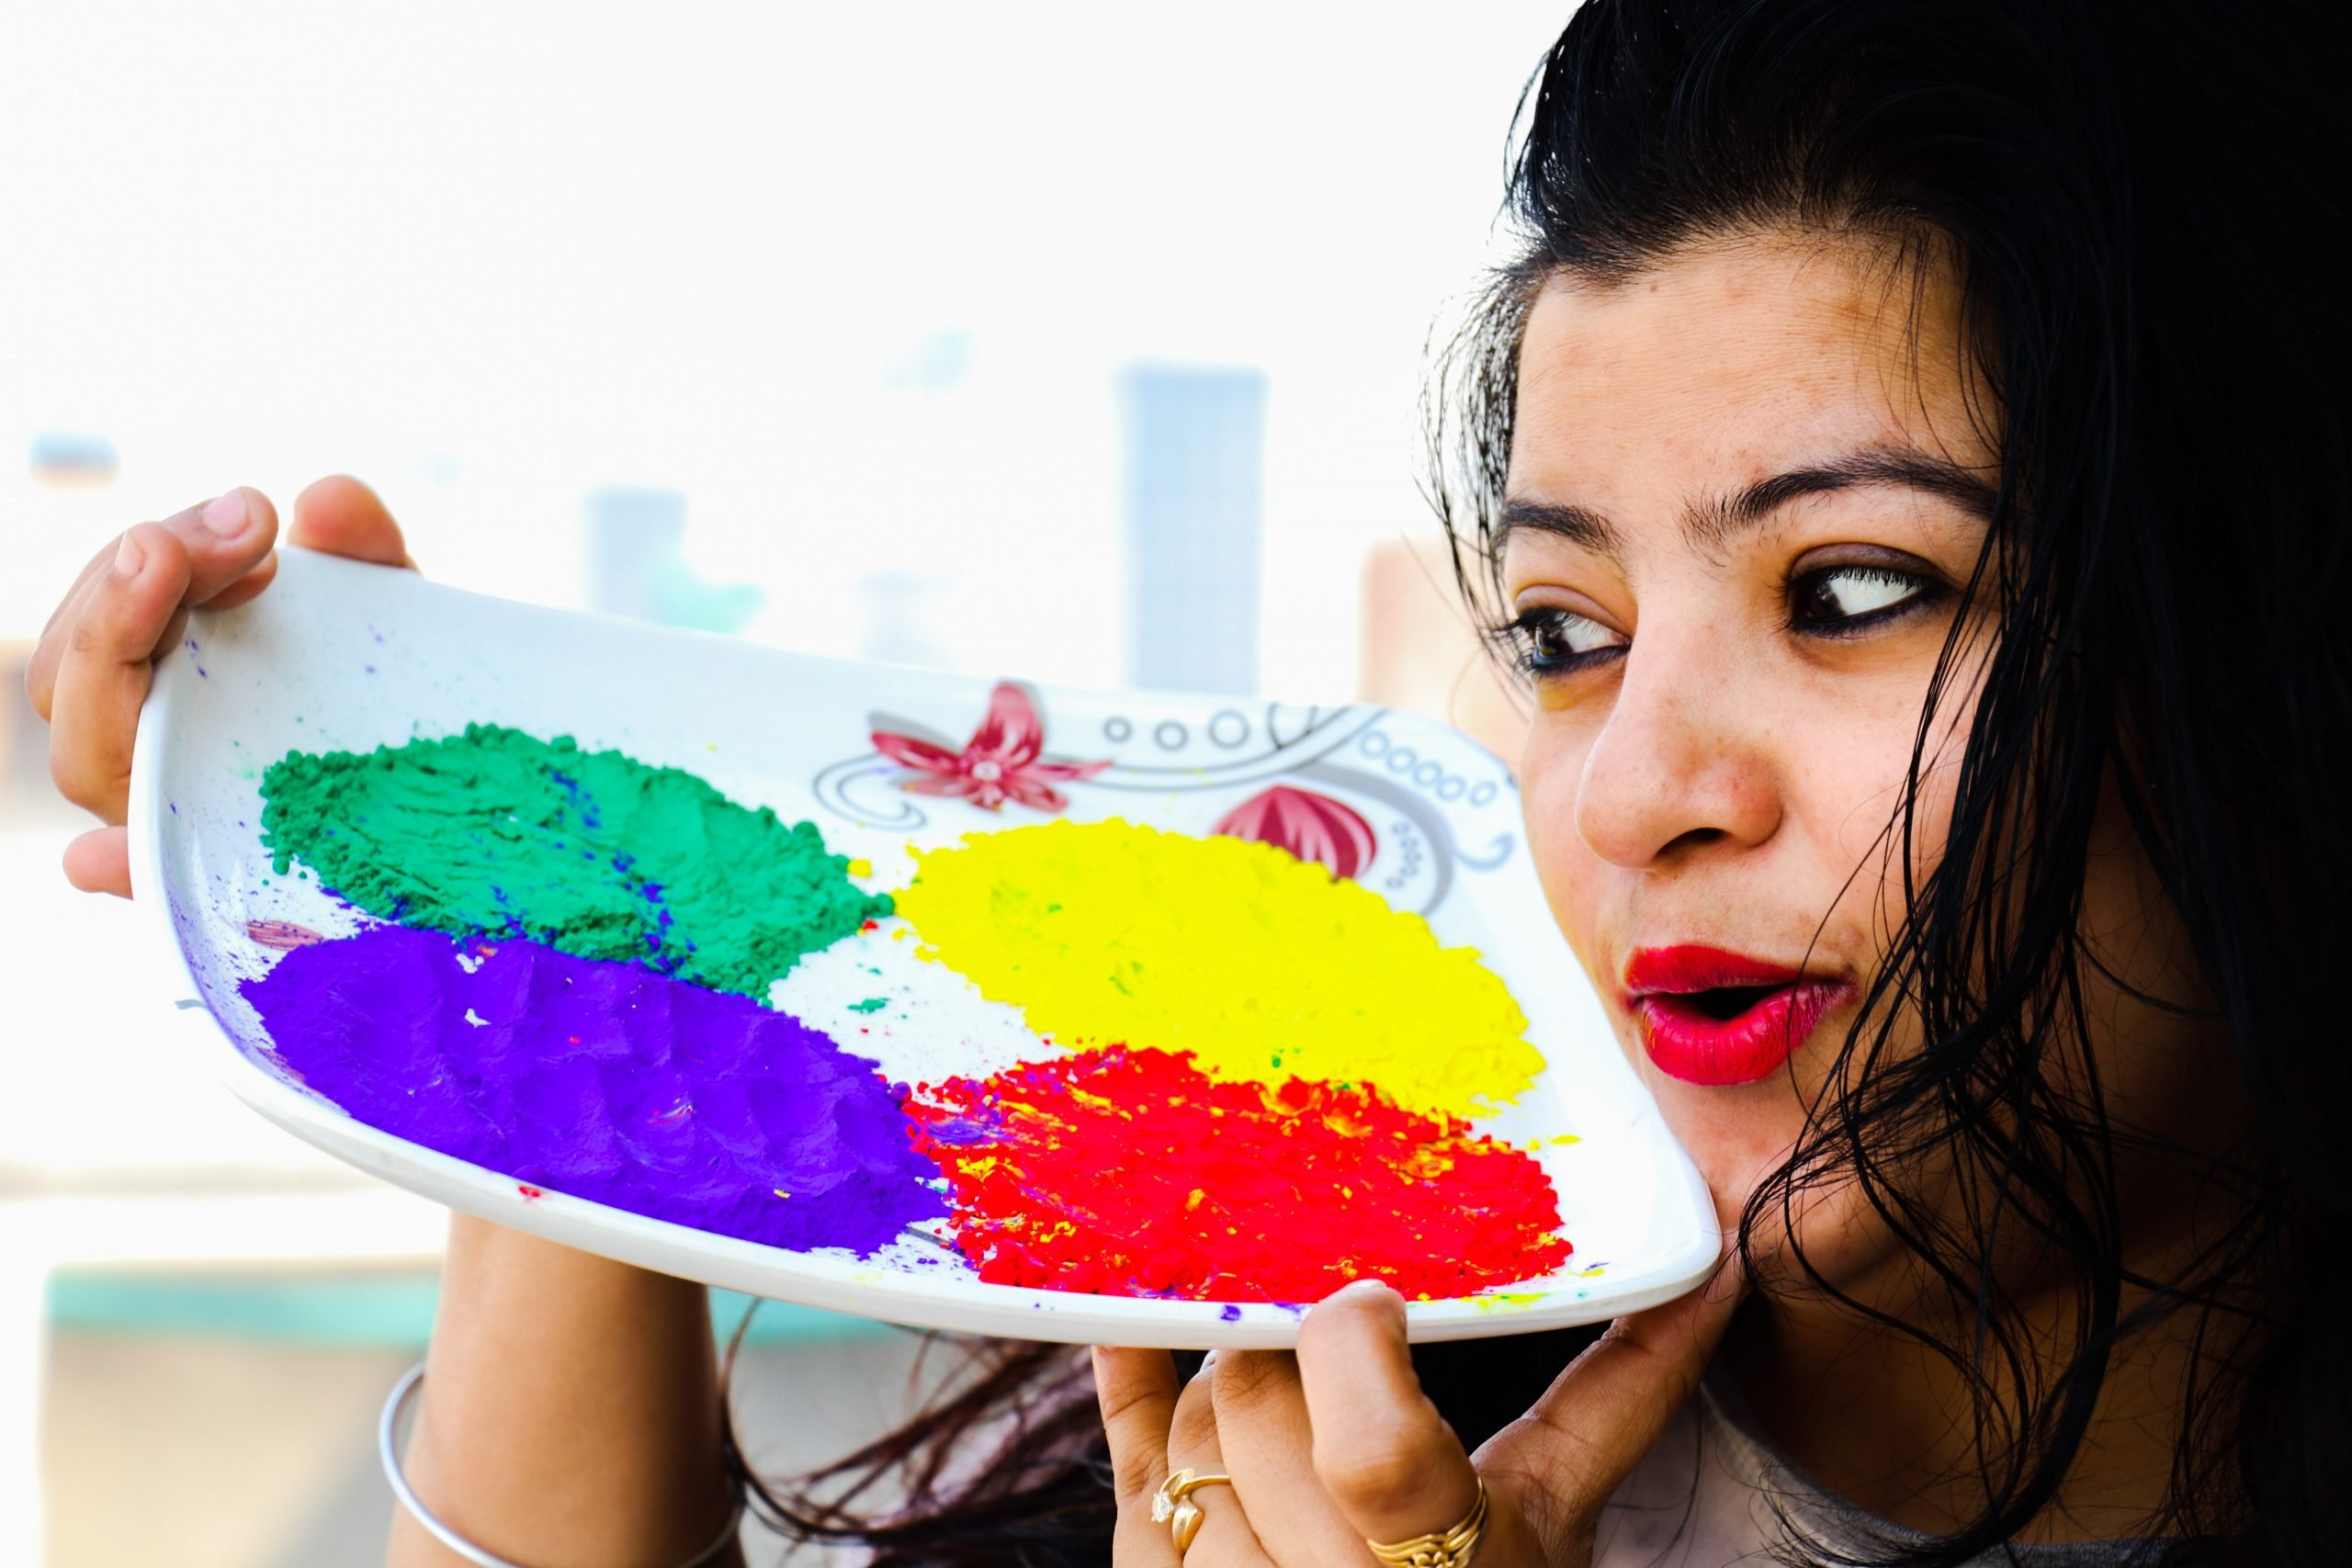 Girl with Holi colors in plate